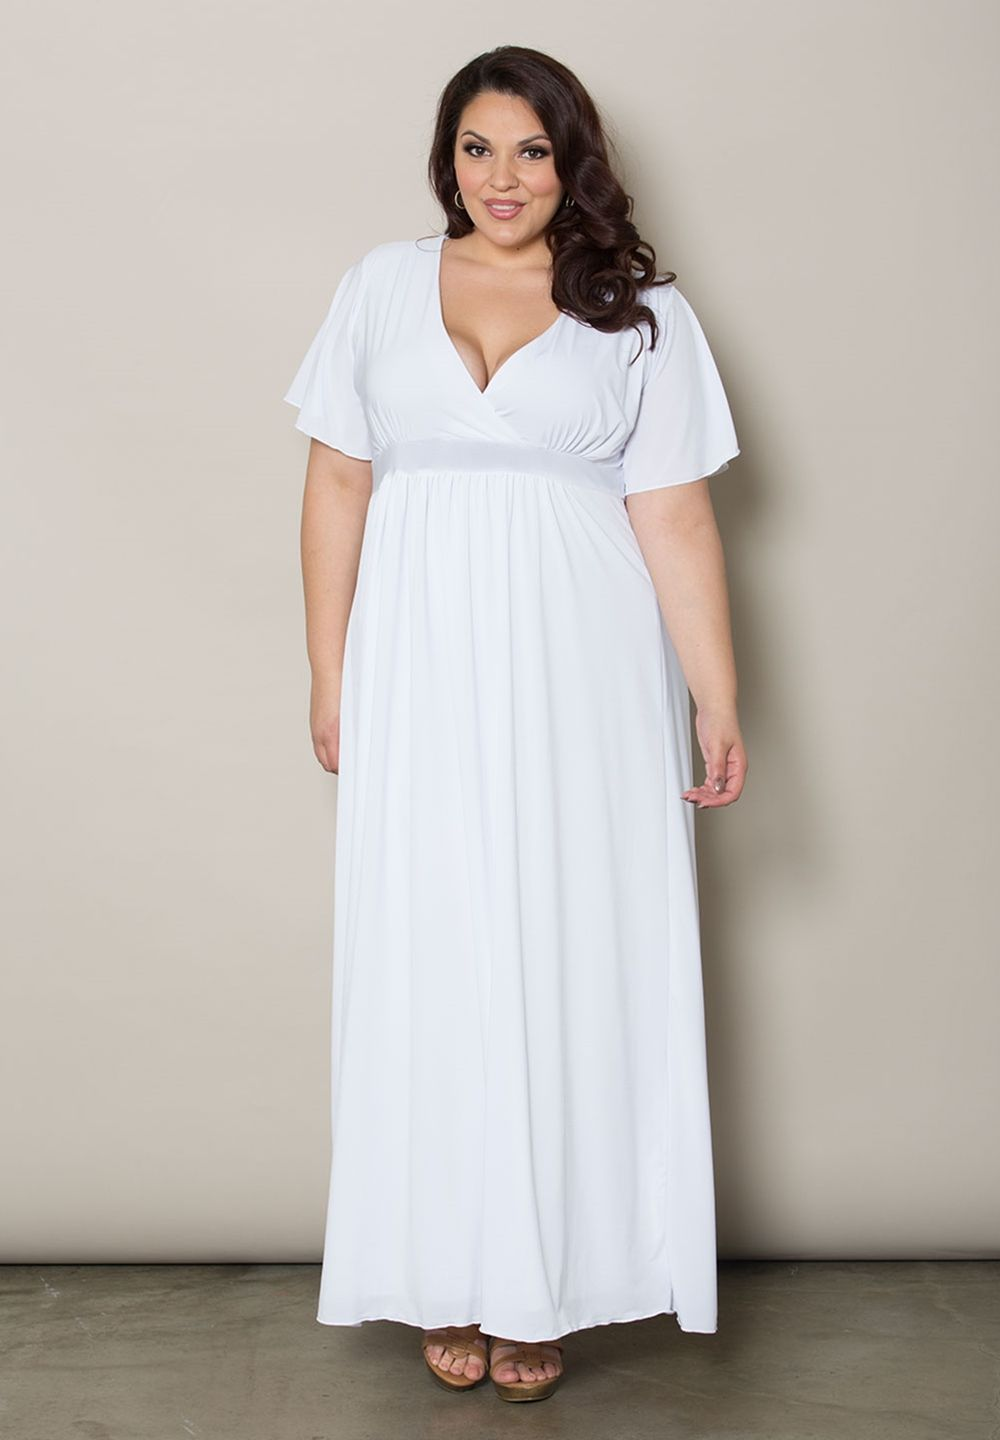 Classic Maxi Dress in 2019 | White plus size dresses, White ...